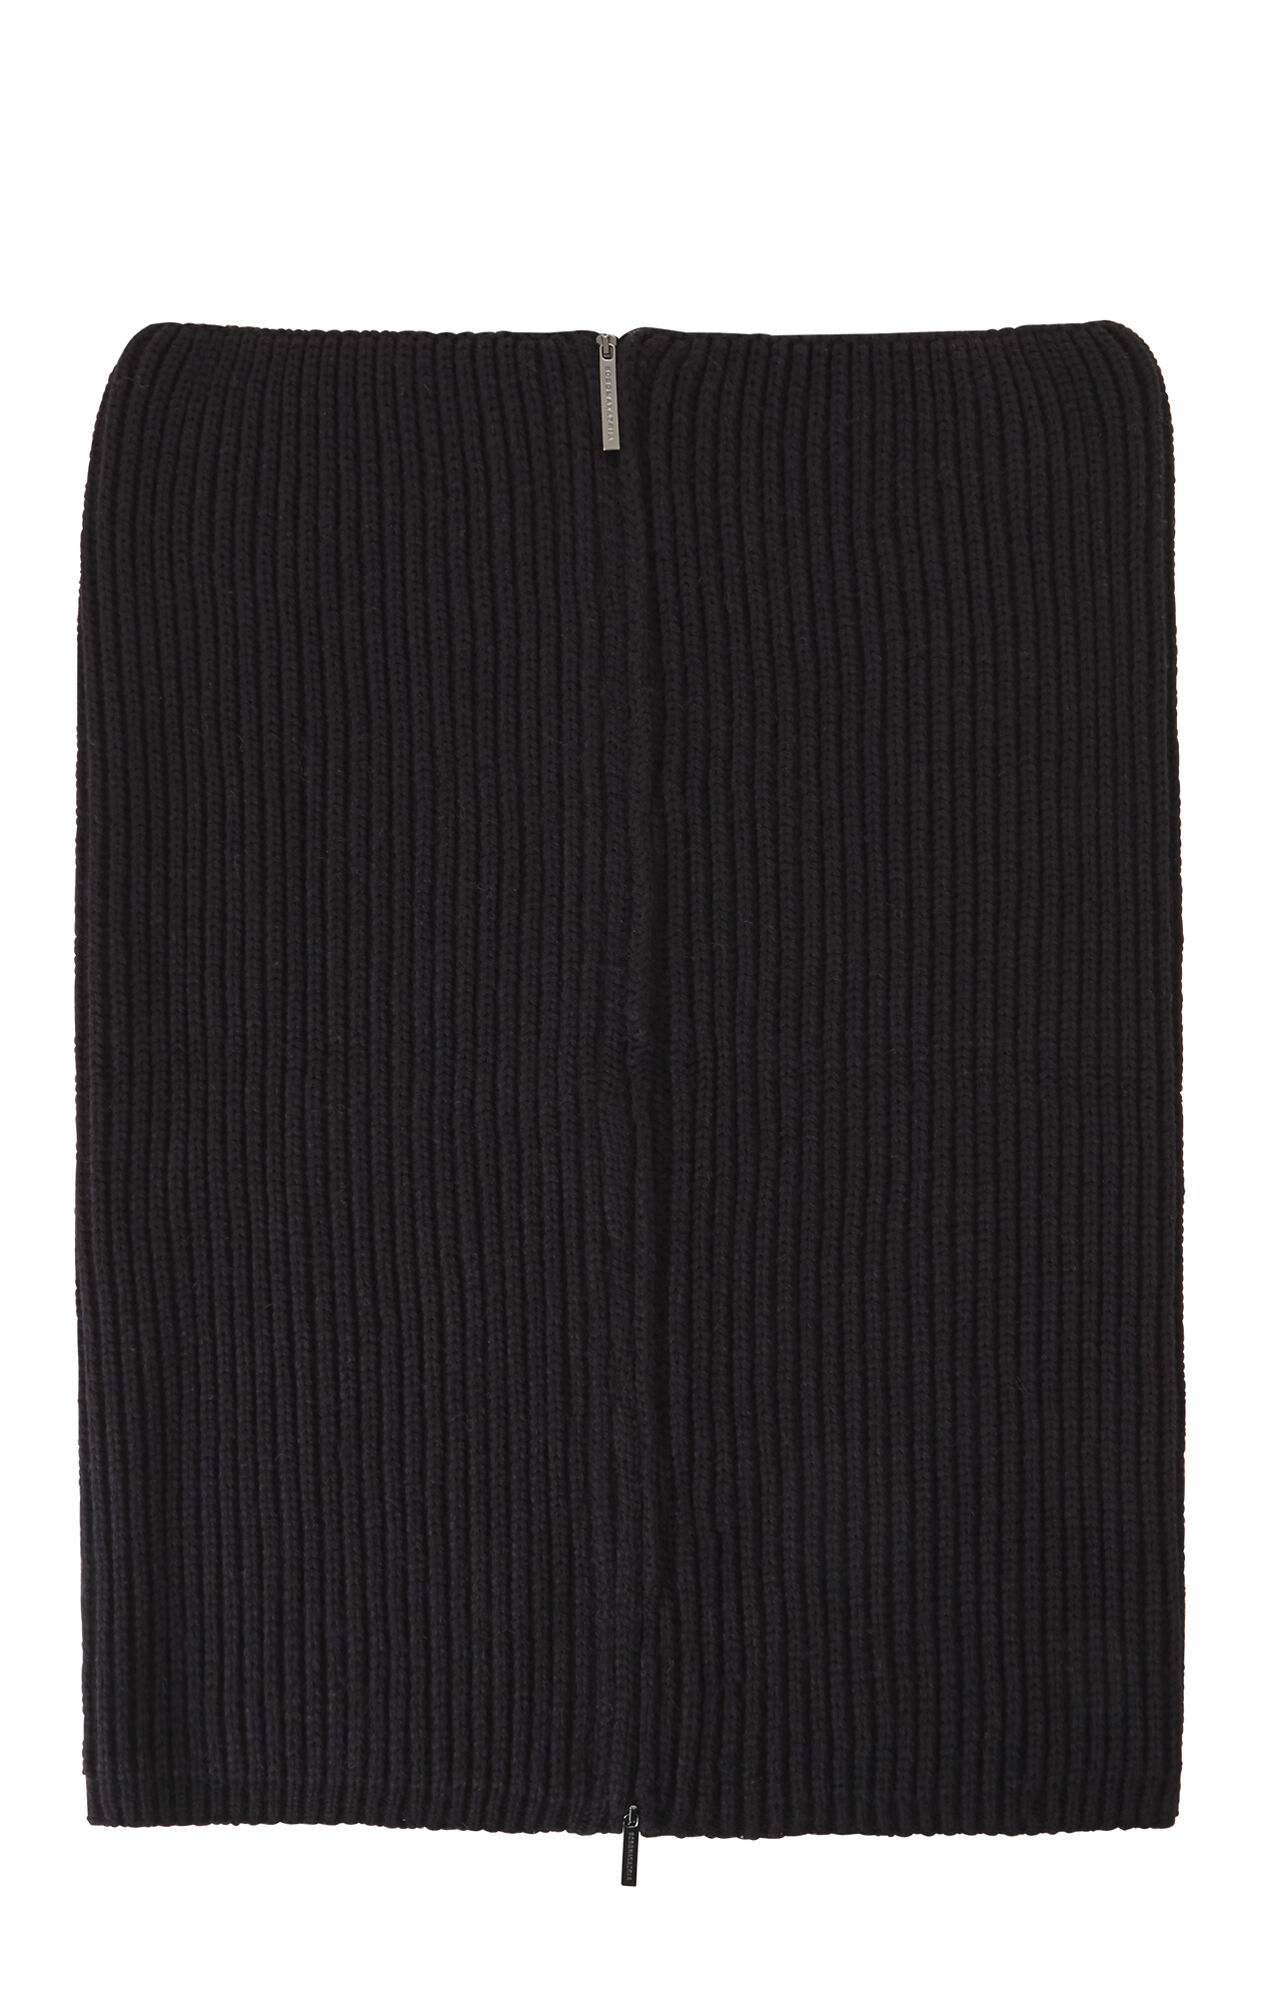 Zip-Knit Snood